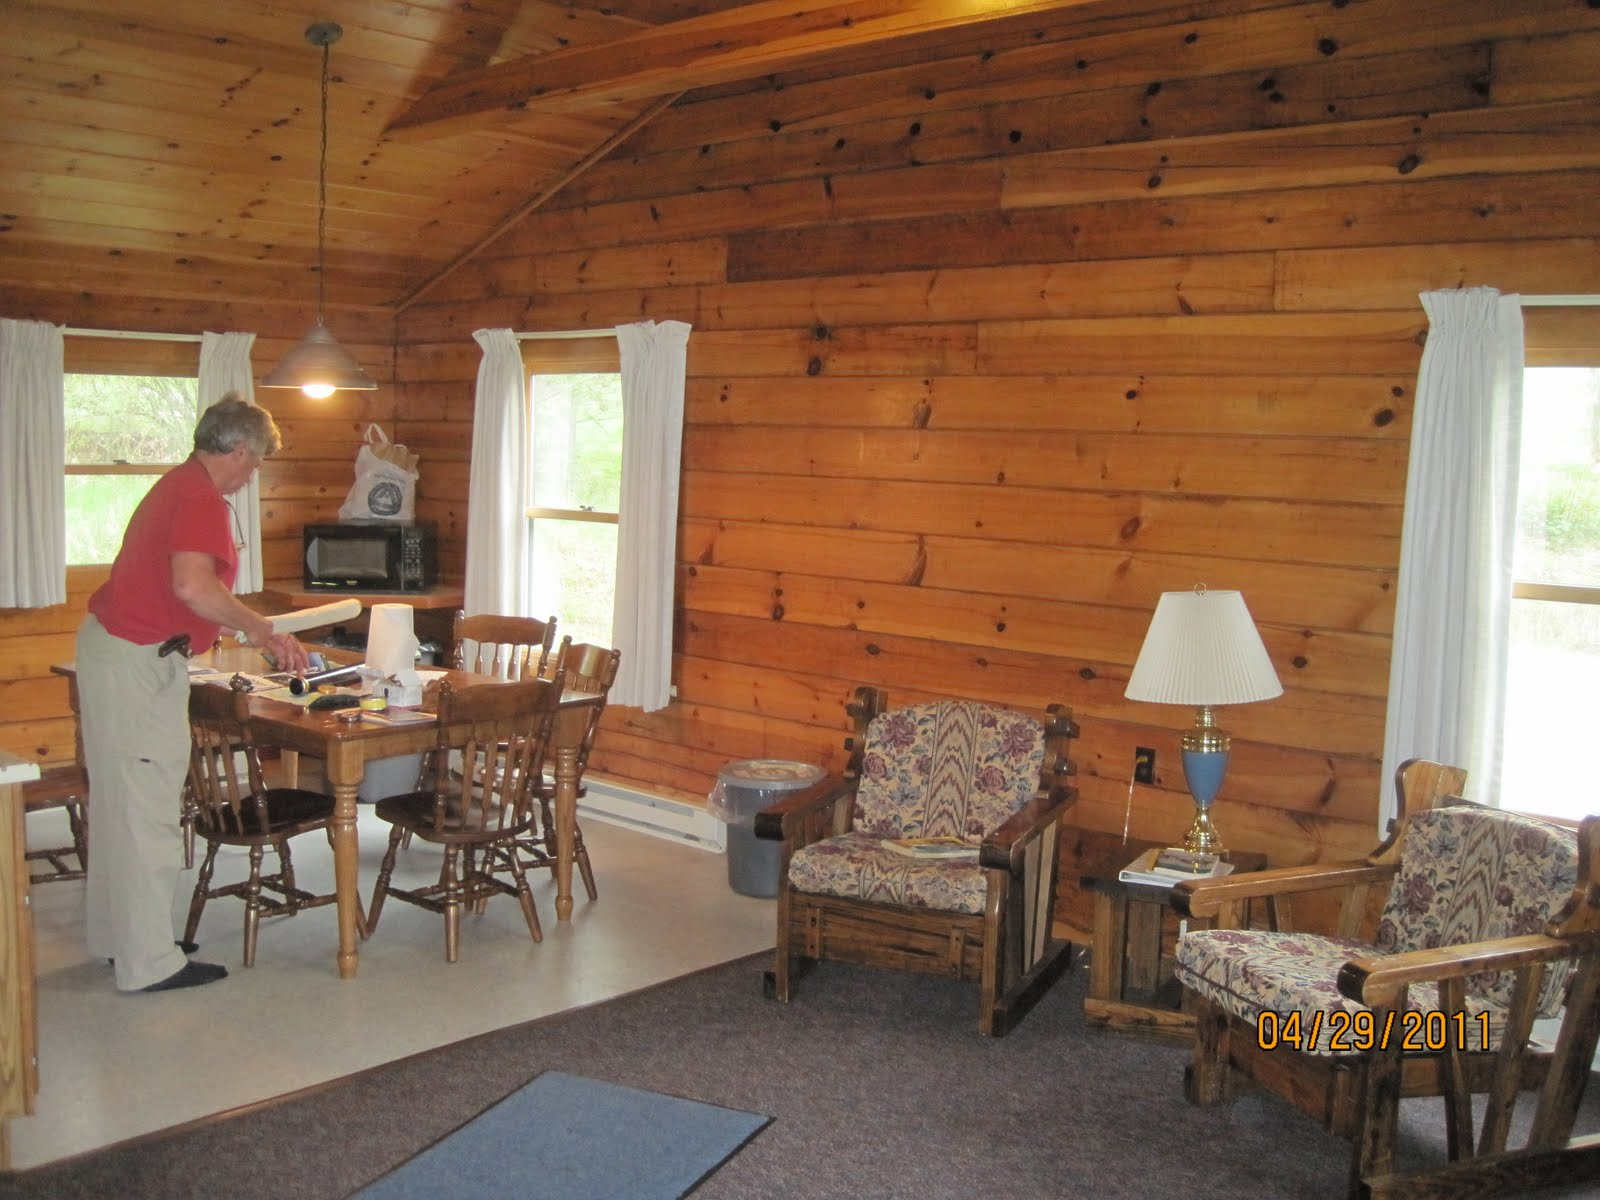 The Cabins Have A Bath With Shower, An Electric Range, Sink, Refrigerator  And Microwave. There Are Two Bedrooms With A Double Bed And Two Sets Of  Bunk Beds.